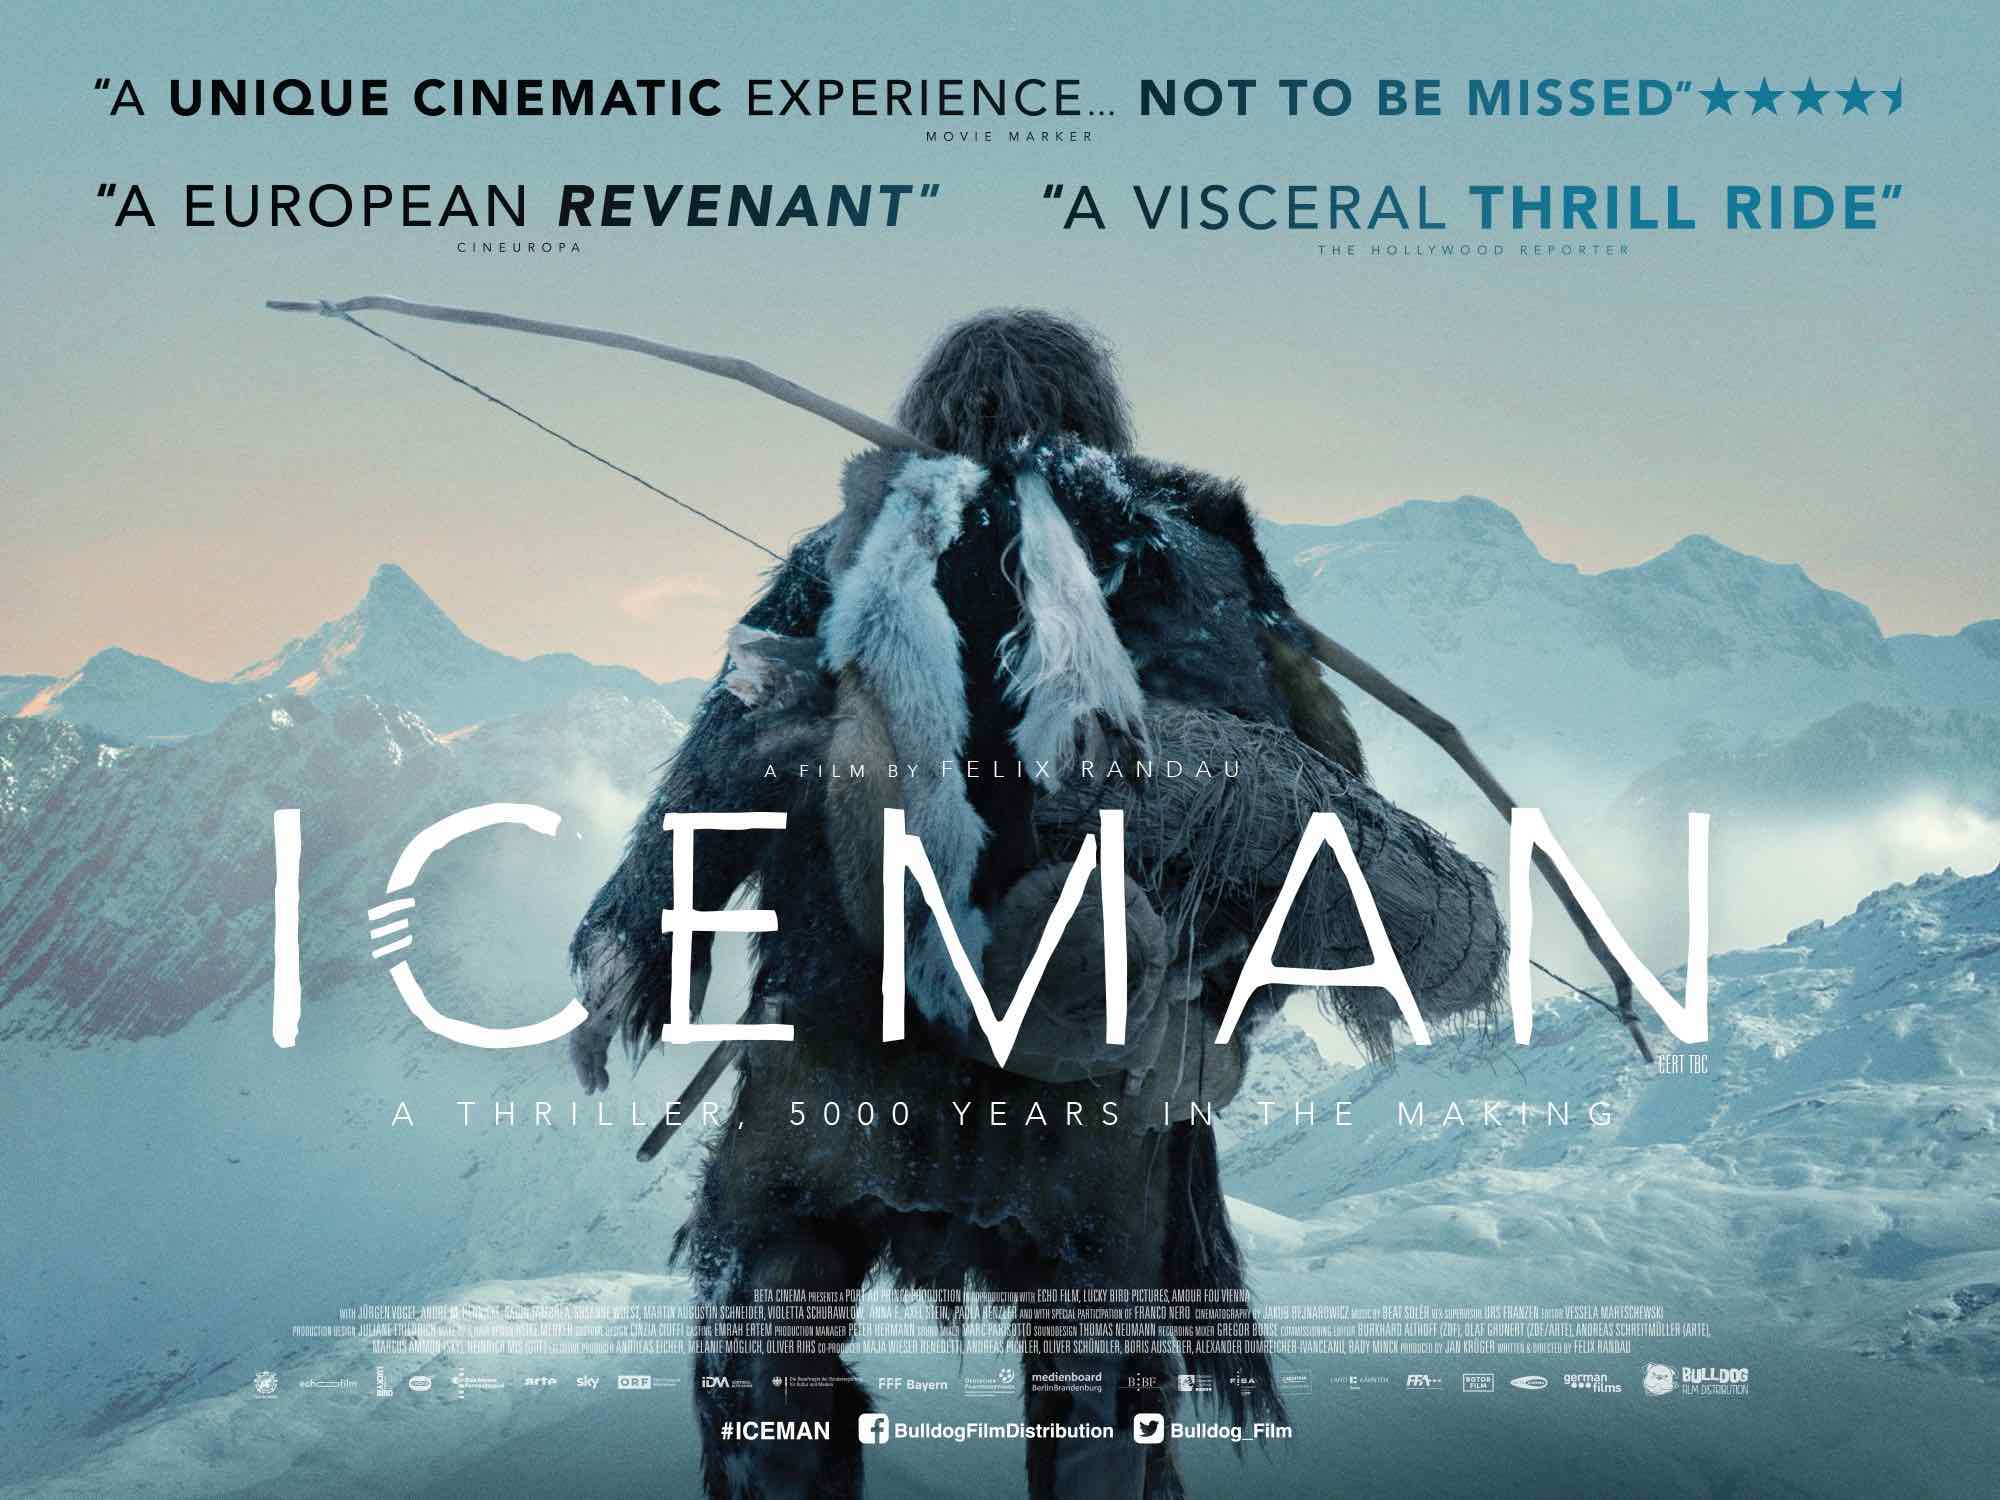 **NEW TRAILER & POSTER** Immersive and visually stunning ICEMAN in cinemas 27th July